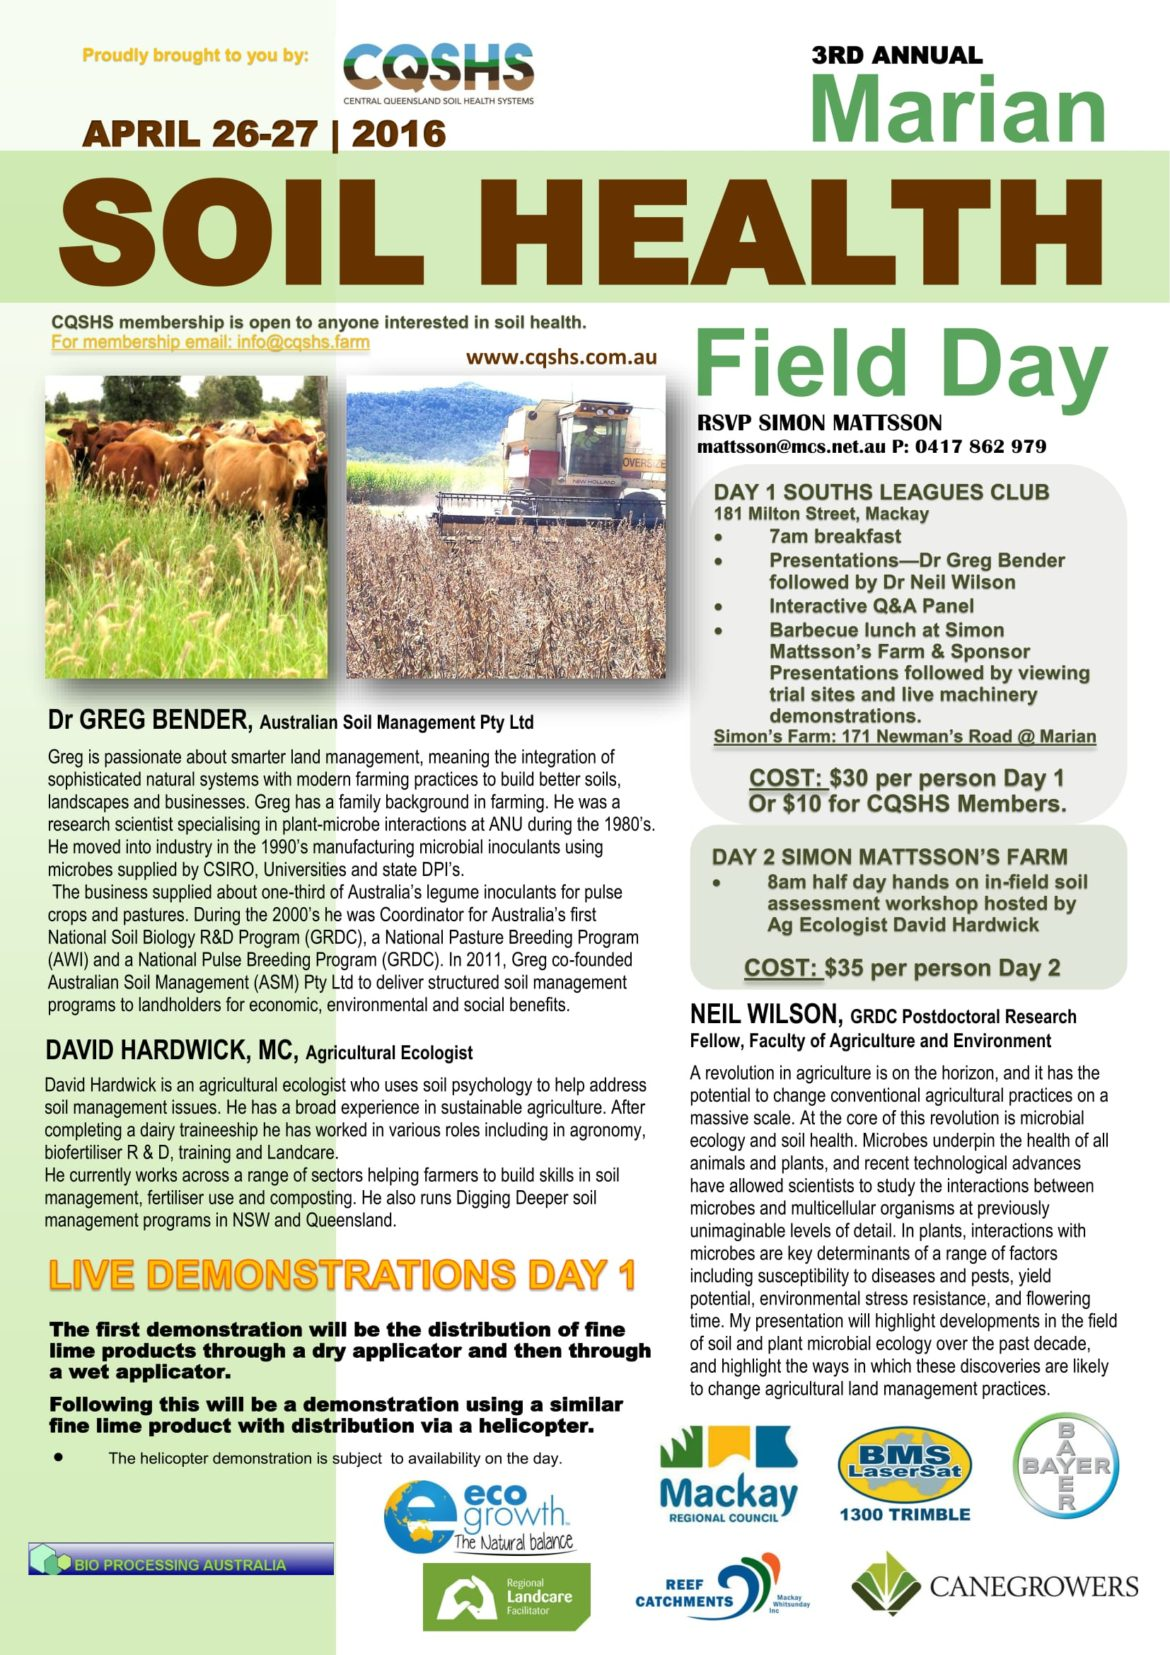 3rd Annual Marian Soil Health Flyer